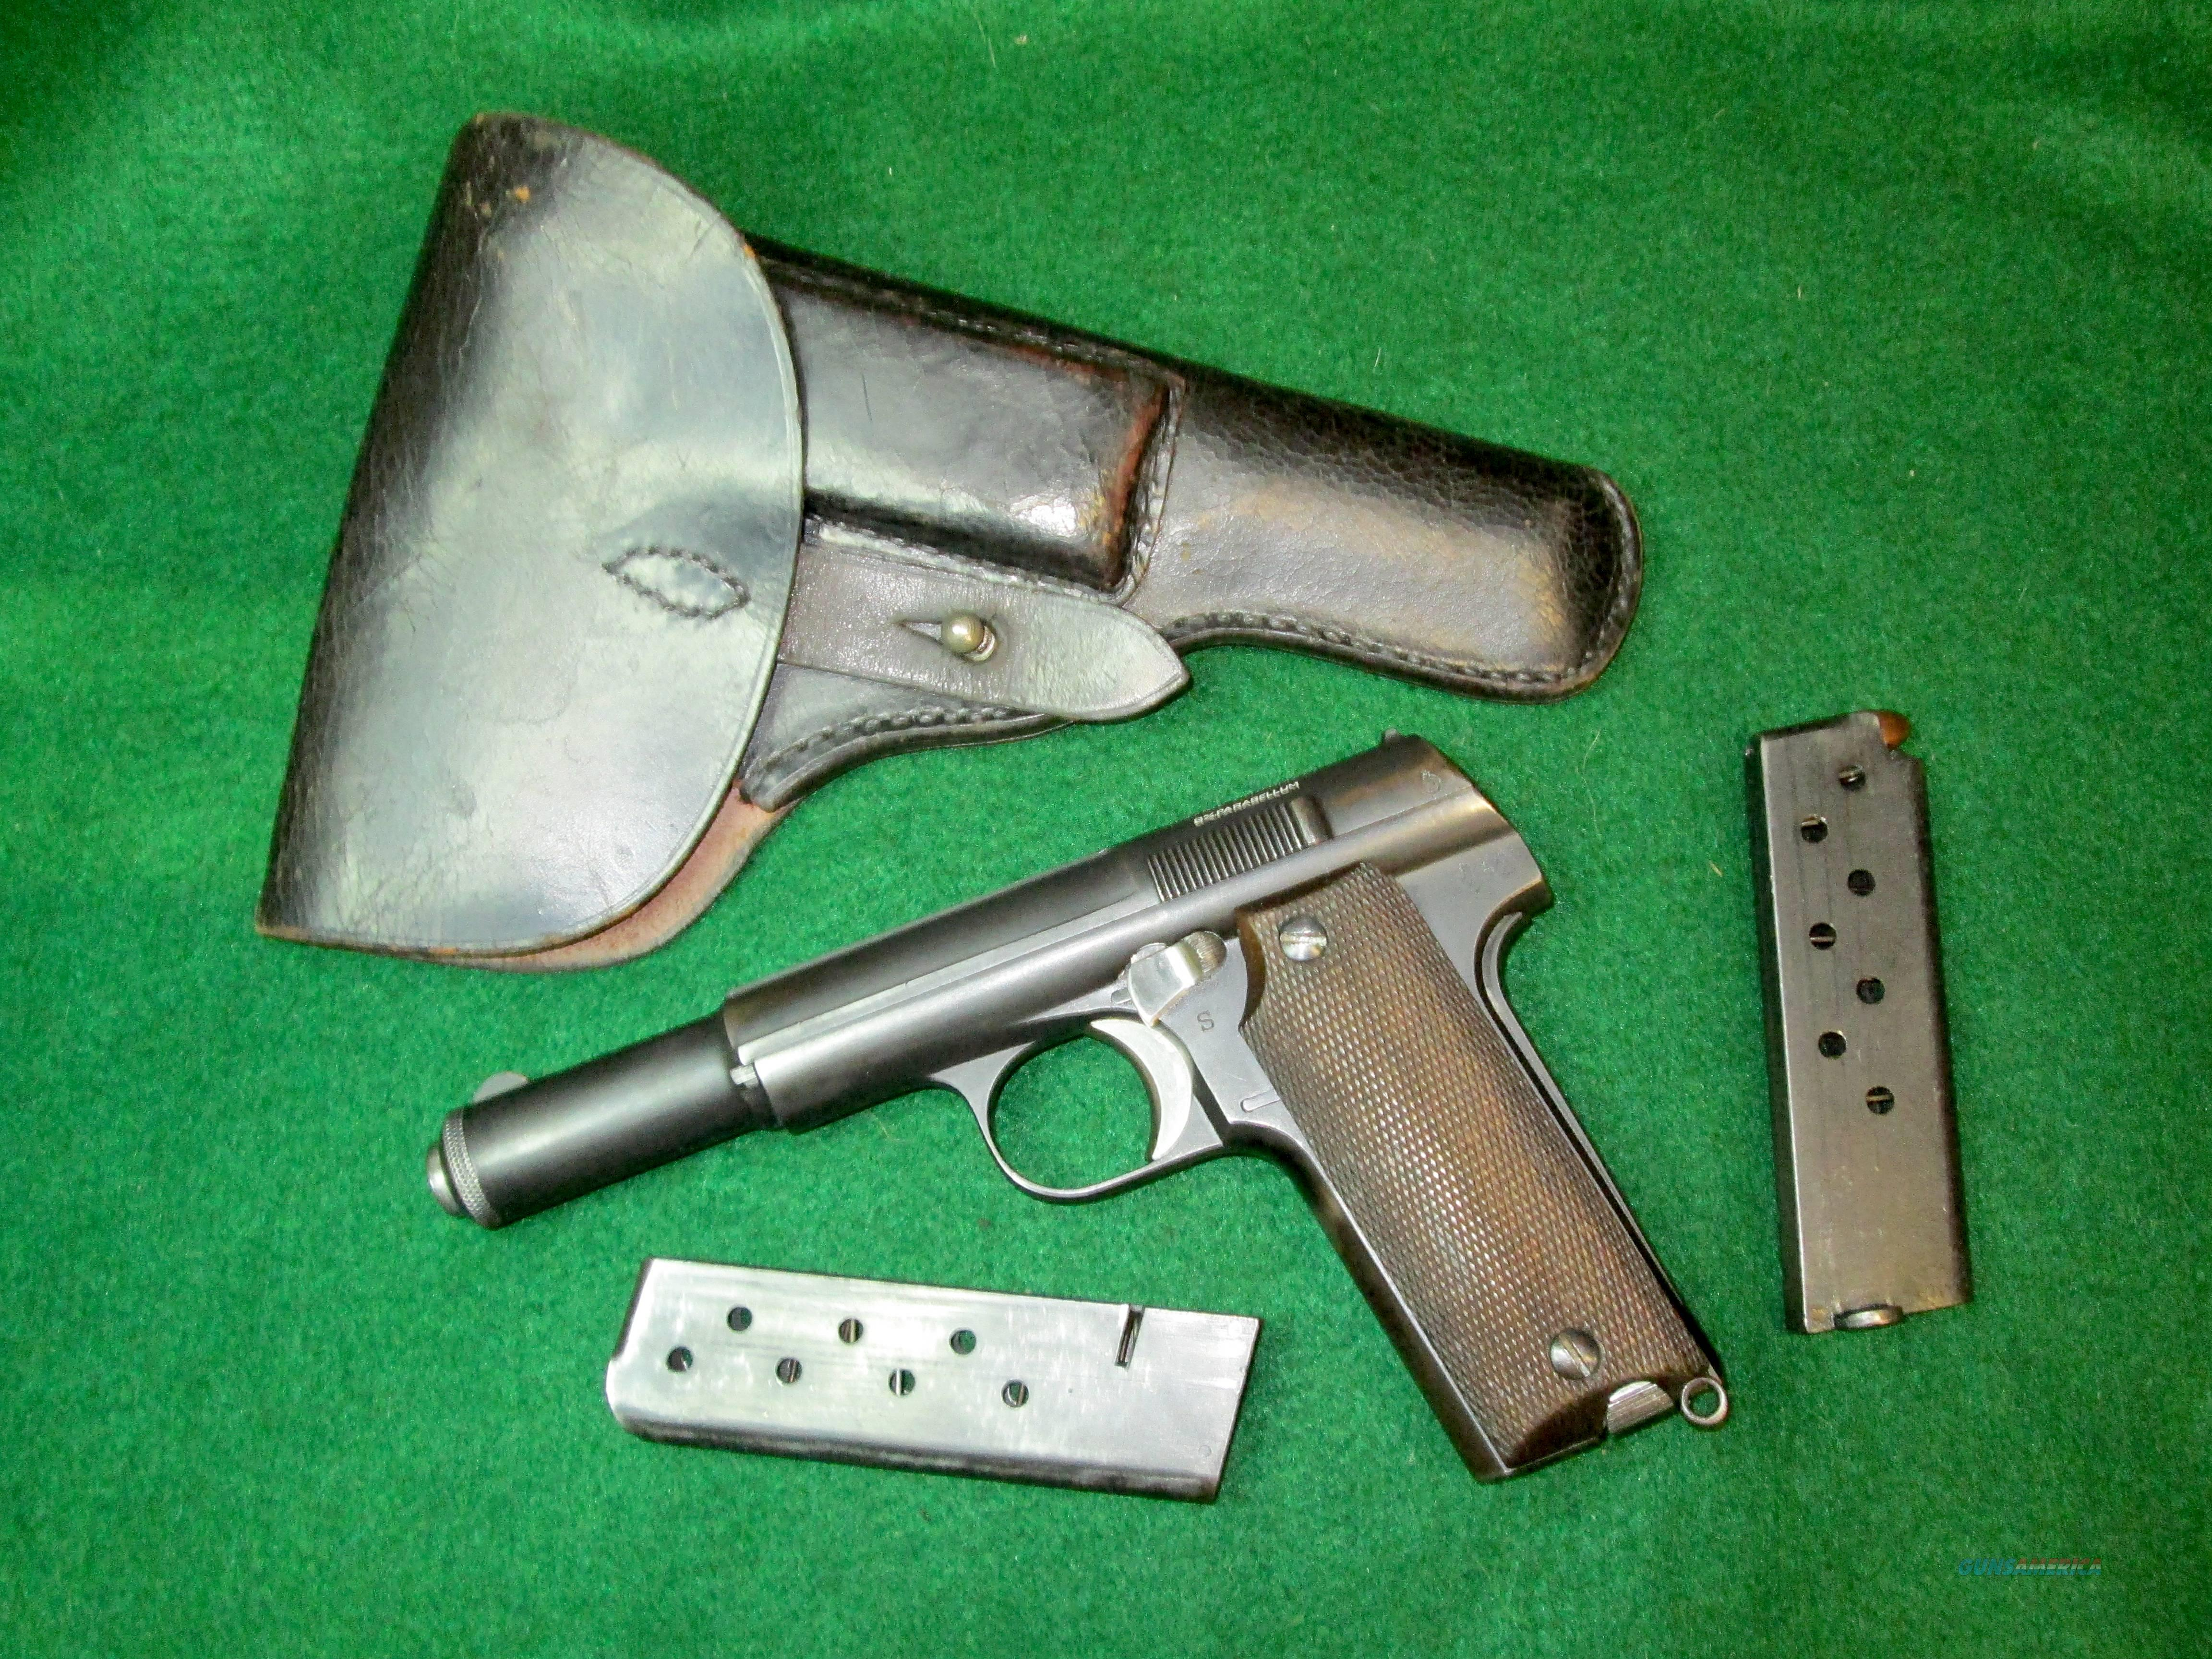 ASTRA 600/43- World War II (1945) Production - ORIGINAL HOLSTER & EXTRA MAG, MATCHING NUMBERS - NOT IMPORT MARKED  Guns > Pistols > Astra Pistols